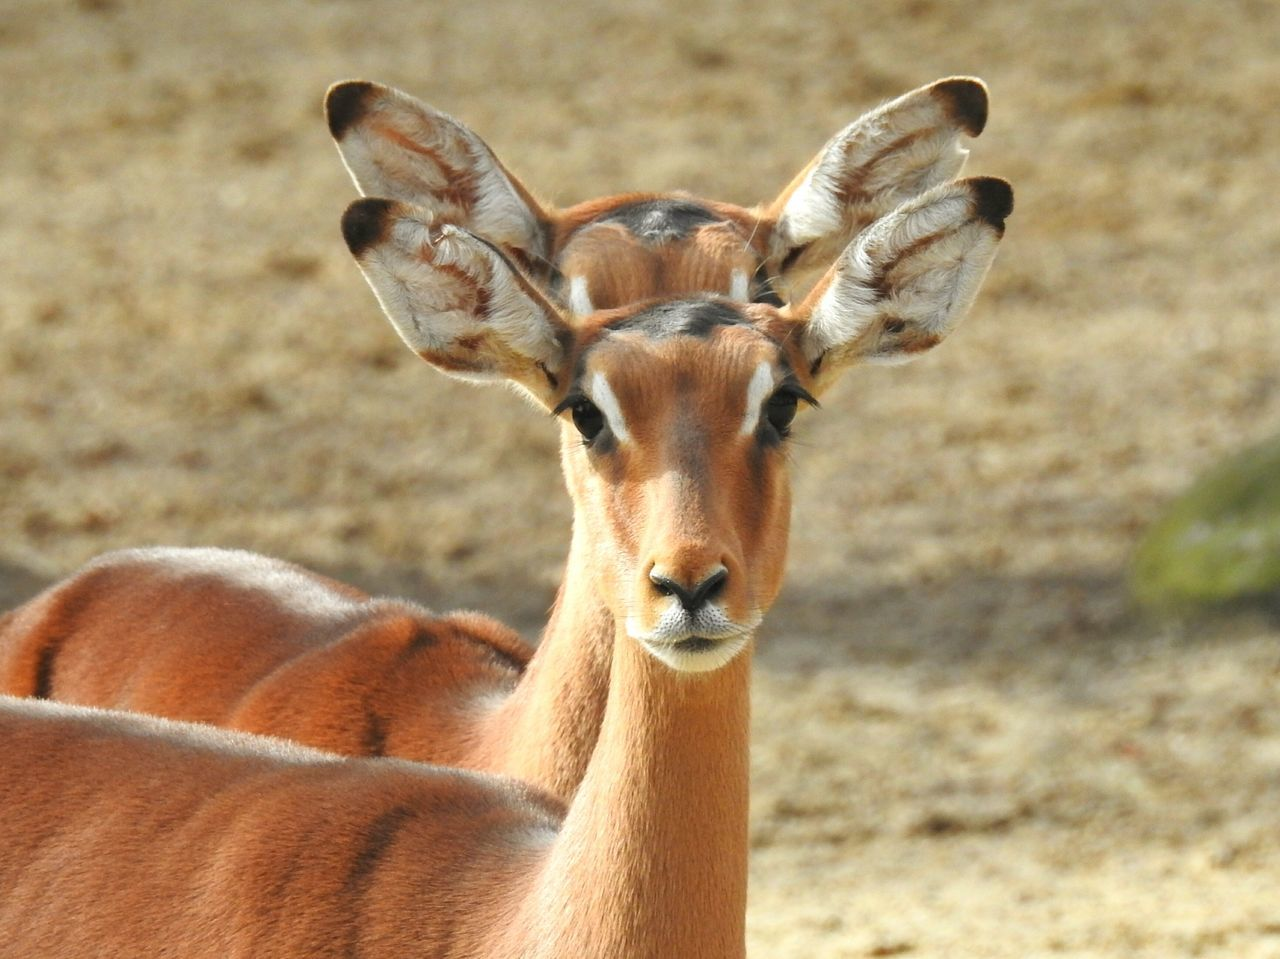 Animals In The Wild Looking At Camera Portrait Animal Wildlife Mammal Nature Impala Animal Themes Day No People Outdoors Beauty In Nature Close-up Safari Animals Antilope Gazelle Double In Line Synchronicity Symmetry Herd Animal EyeEmNewHere